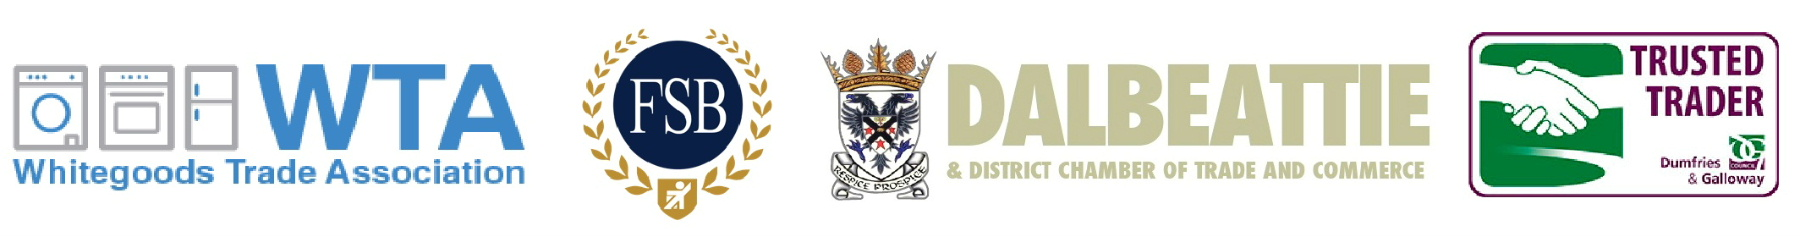 Dalbeattie Appliance Centre is a D&G Council Trusted Trader